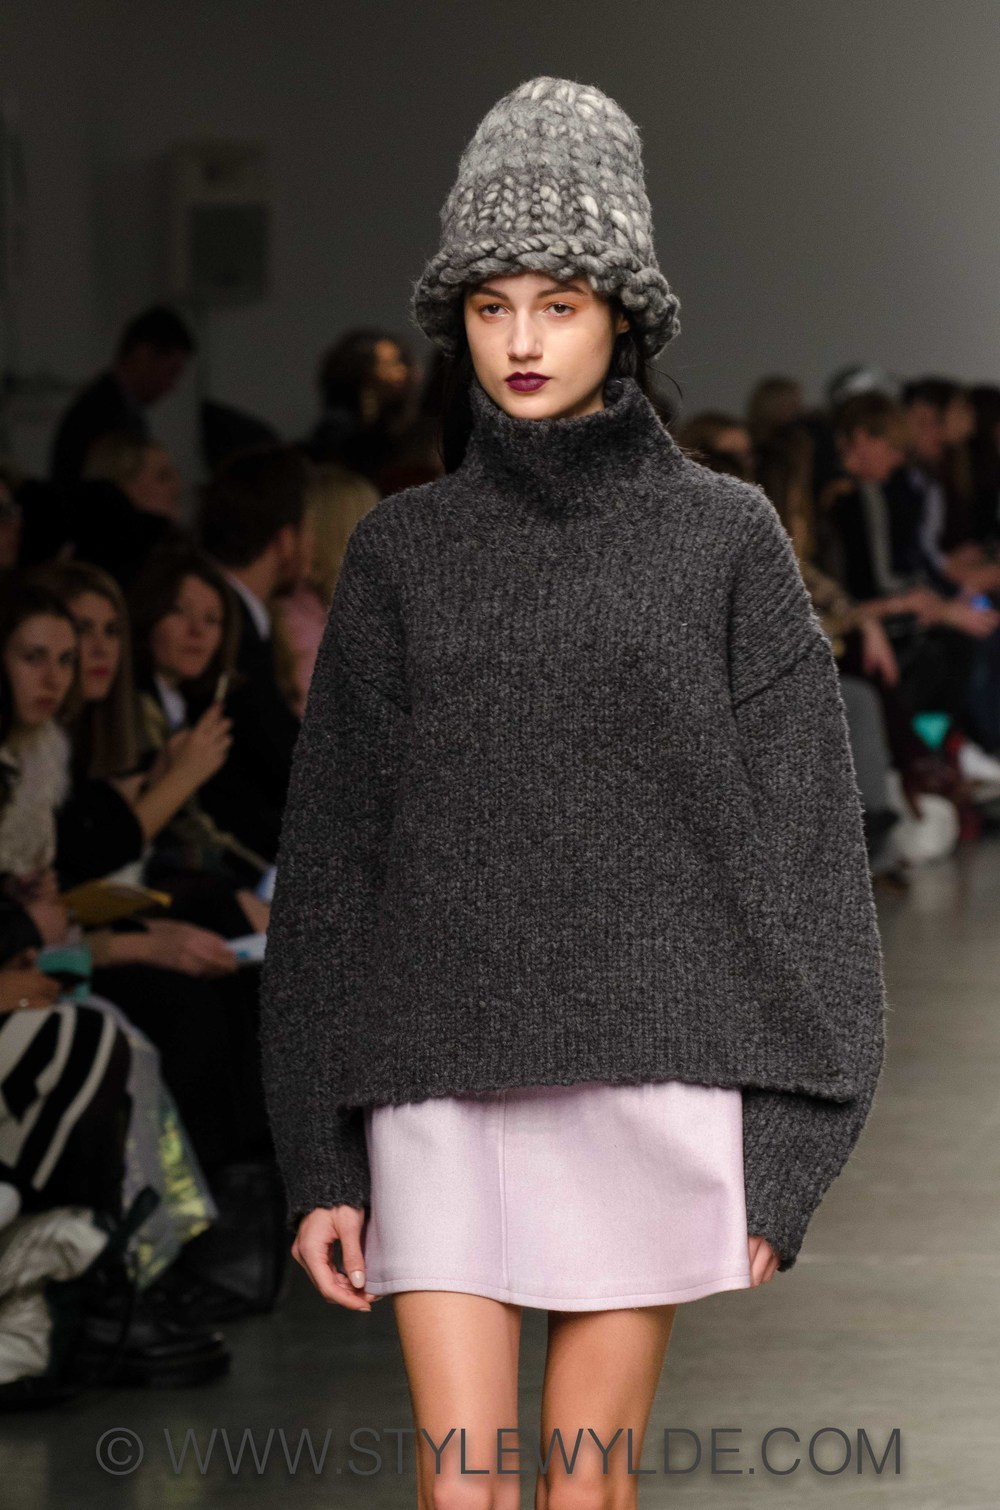 stylewylde_timo_AW2015_FOH-23.jpg